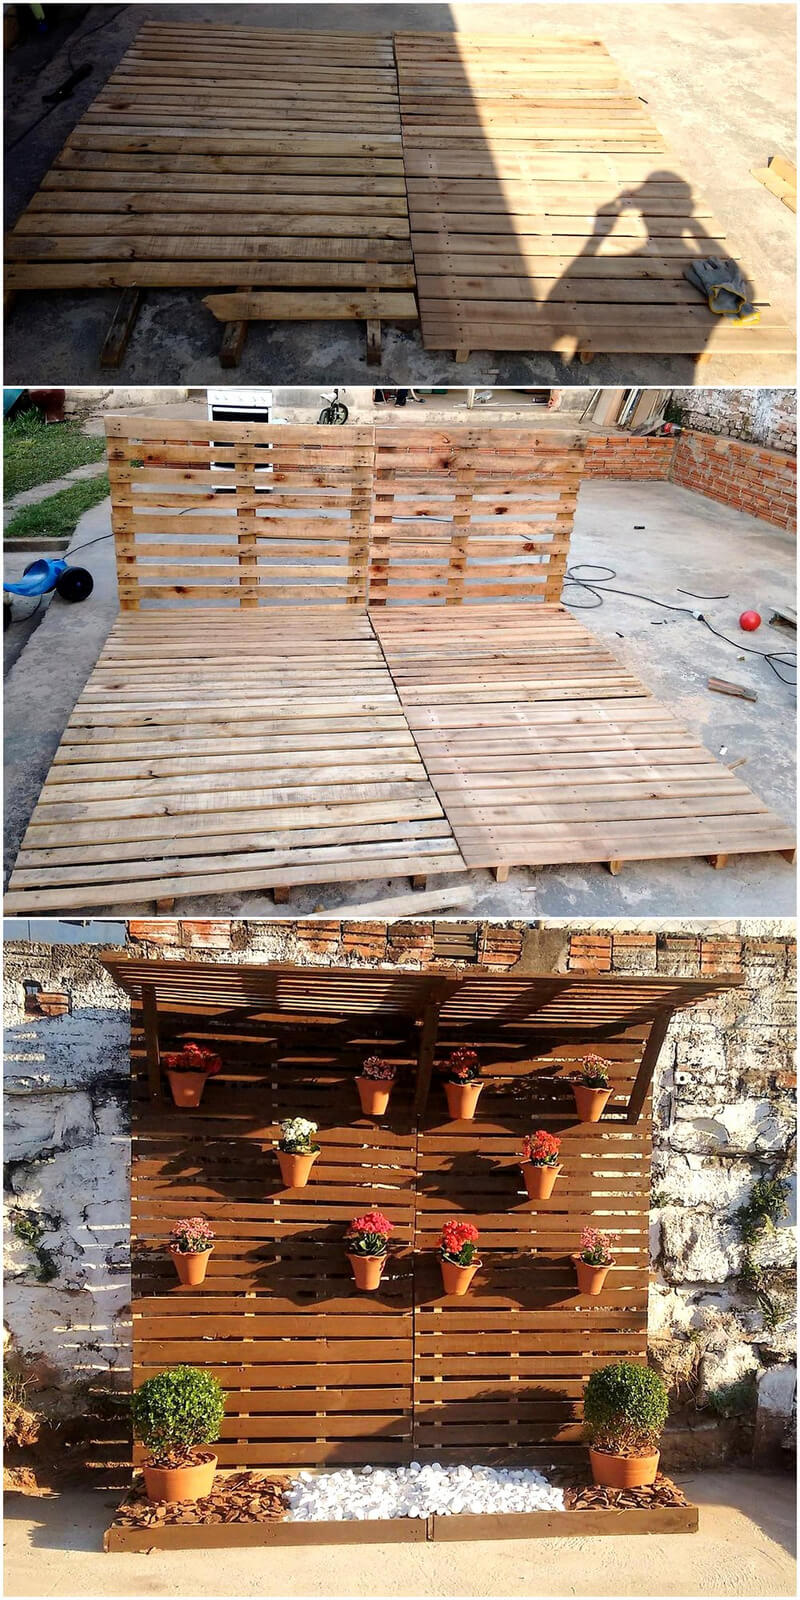 Diy Ideas For Recycled Pallets Reusing Wood Pallet Furniture